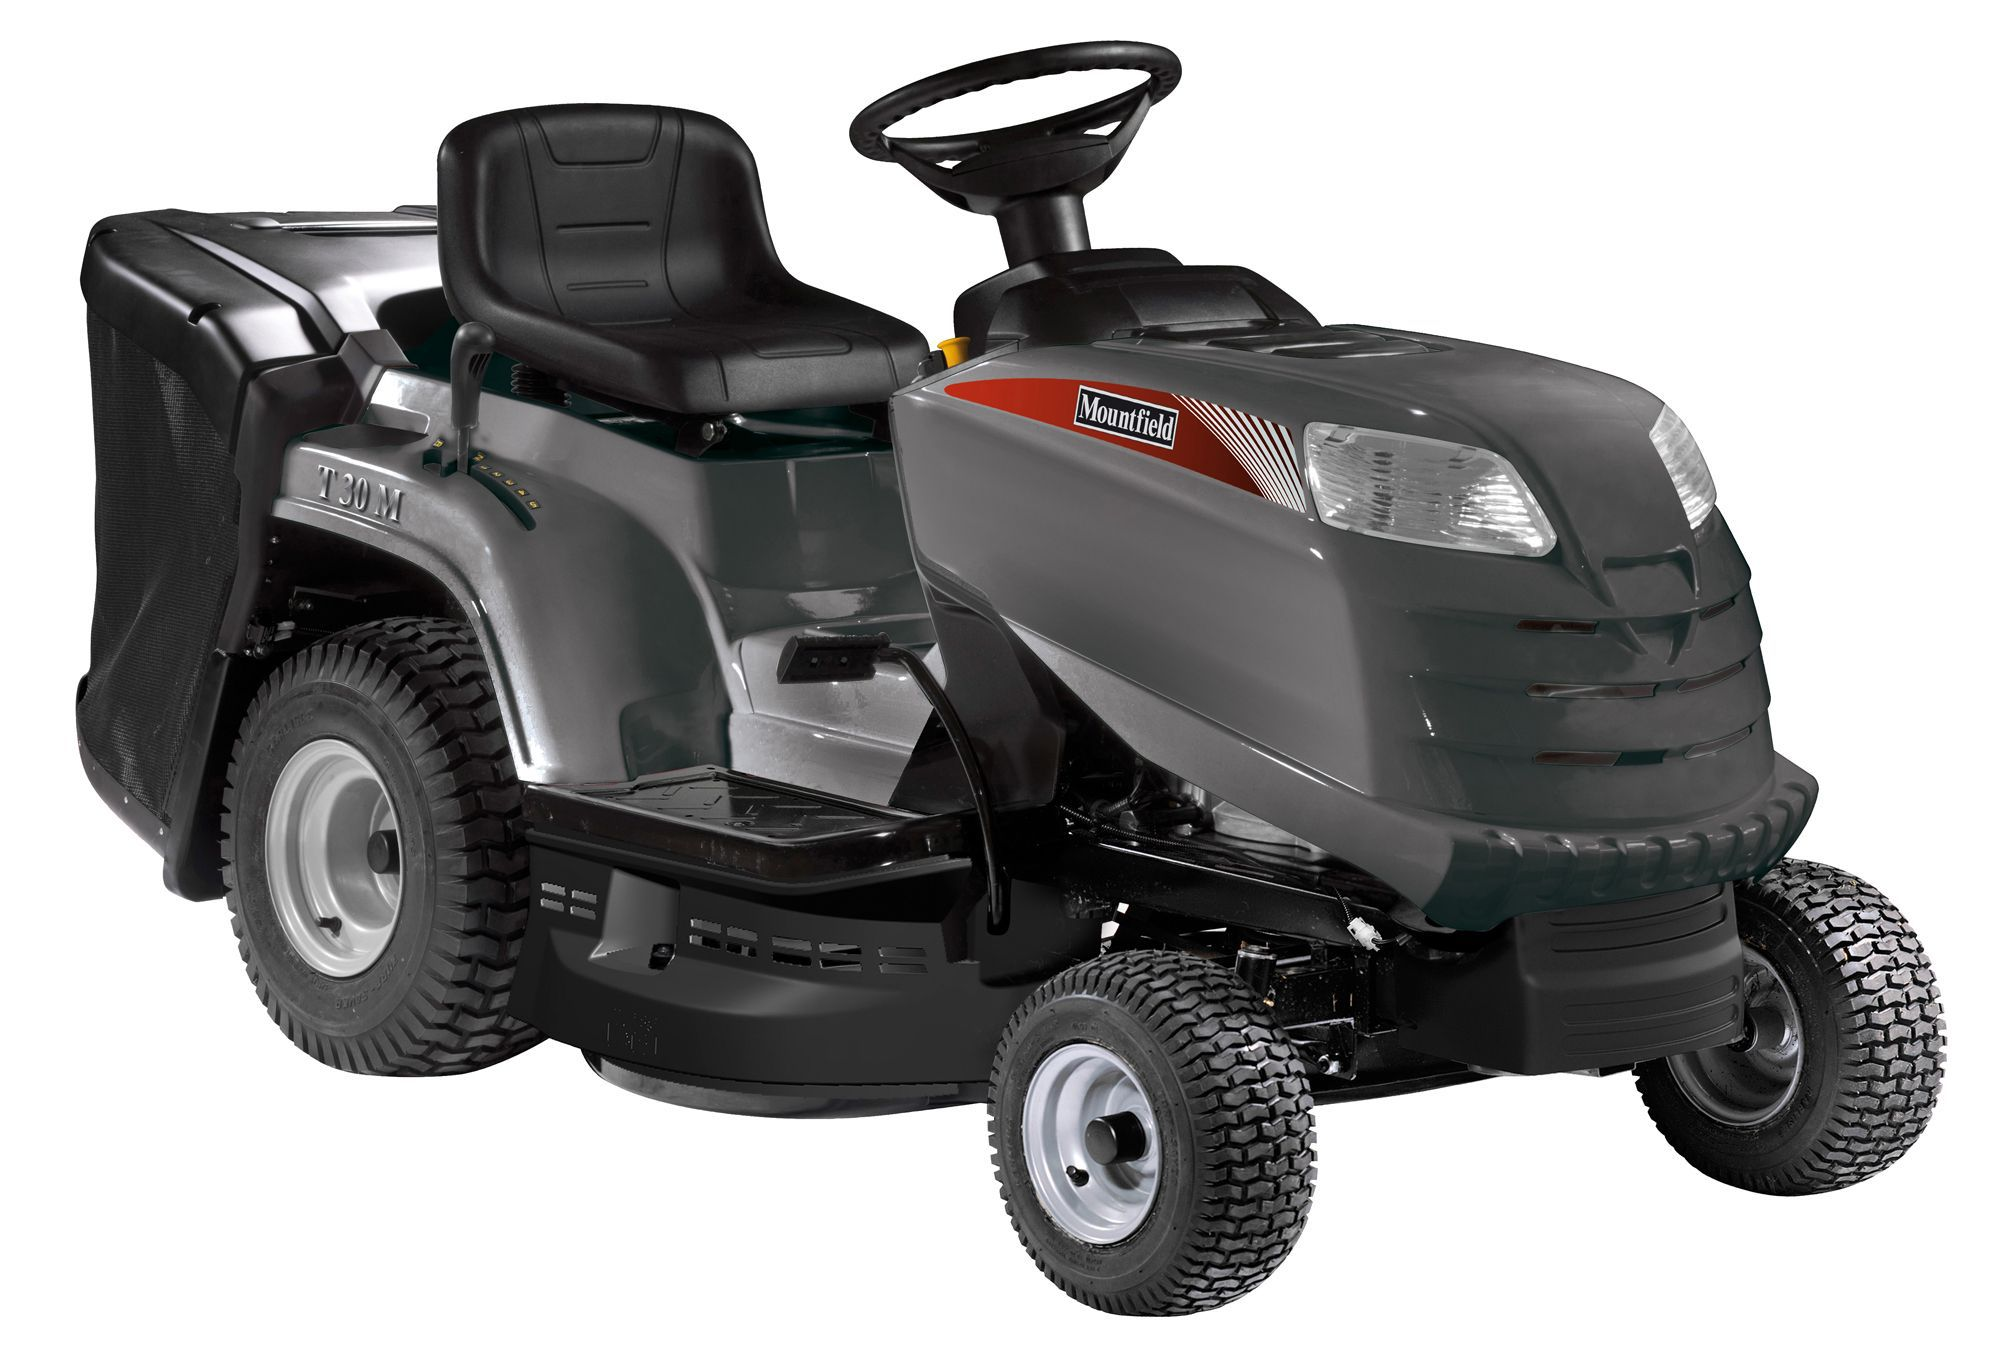 Ride On Mower >> Mountfield T30m Petrol Ride On Lawnmower Departments Diy At B Q